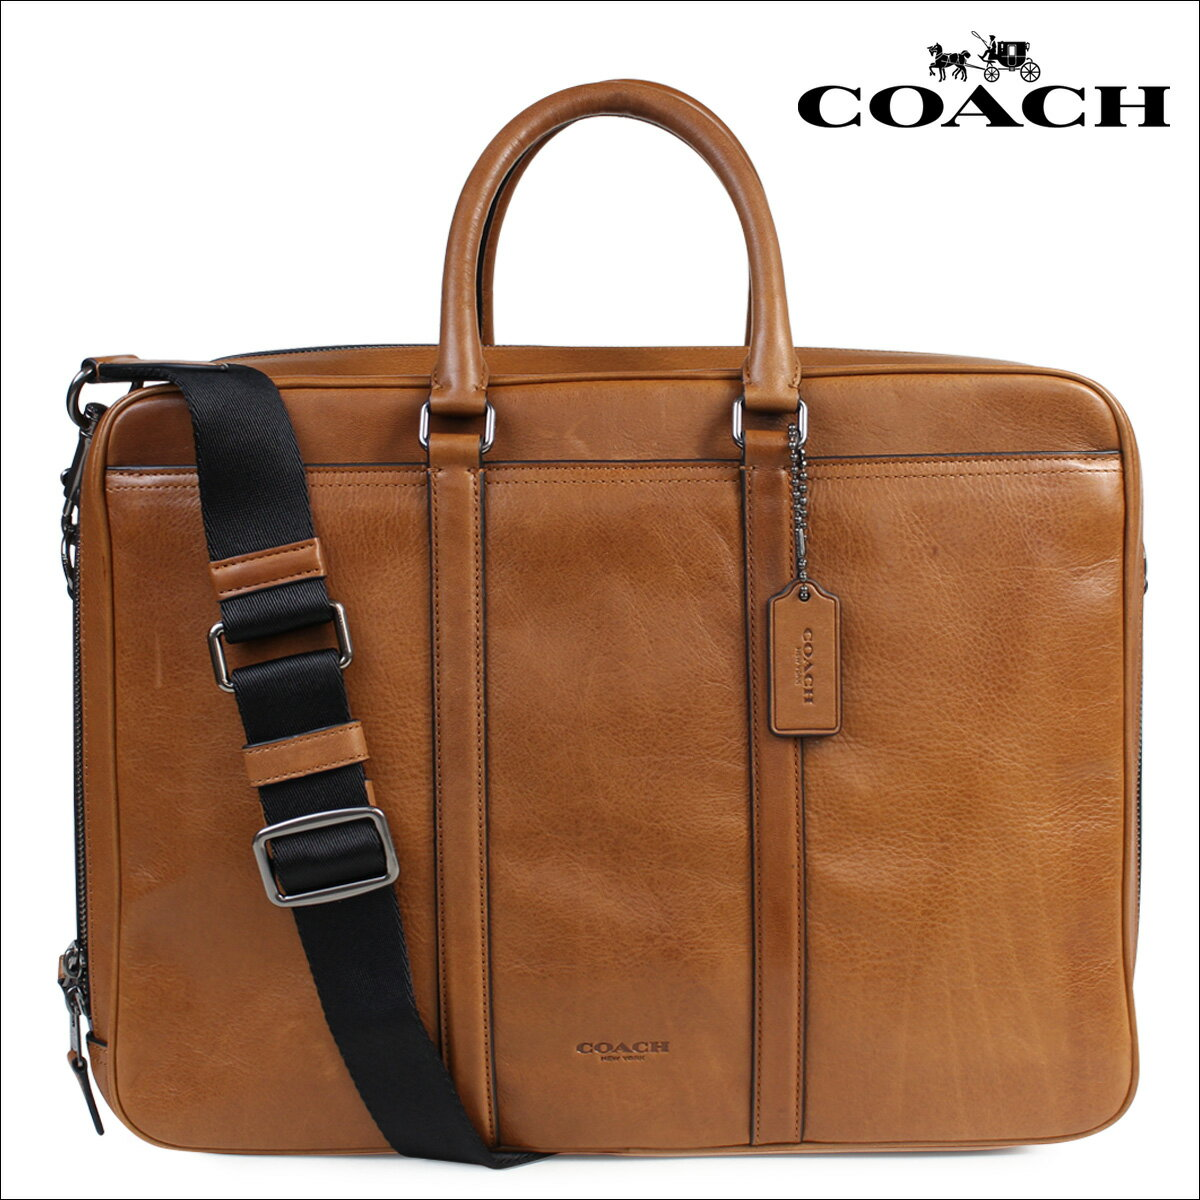 [SOLD OUT] コーチ COACH バッグ ビジネスバッグ メンズ ブリーフケース レザー  F71733 サドル:Whats up Sports